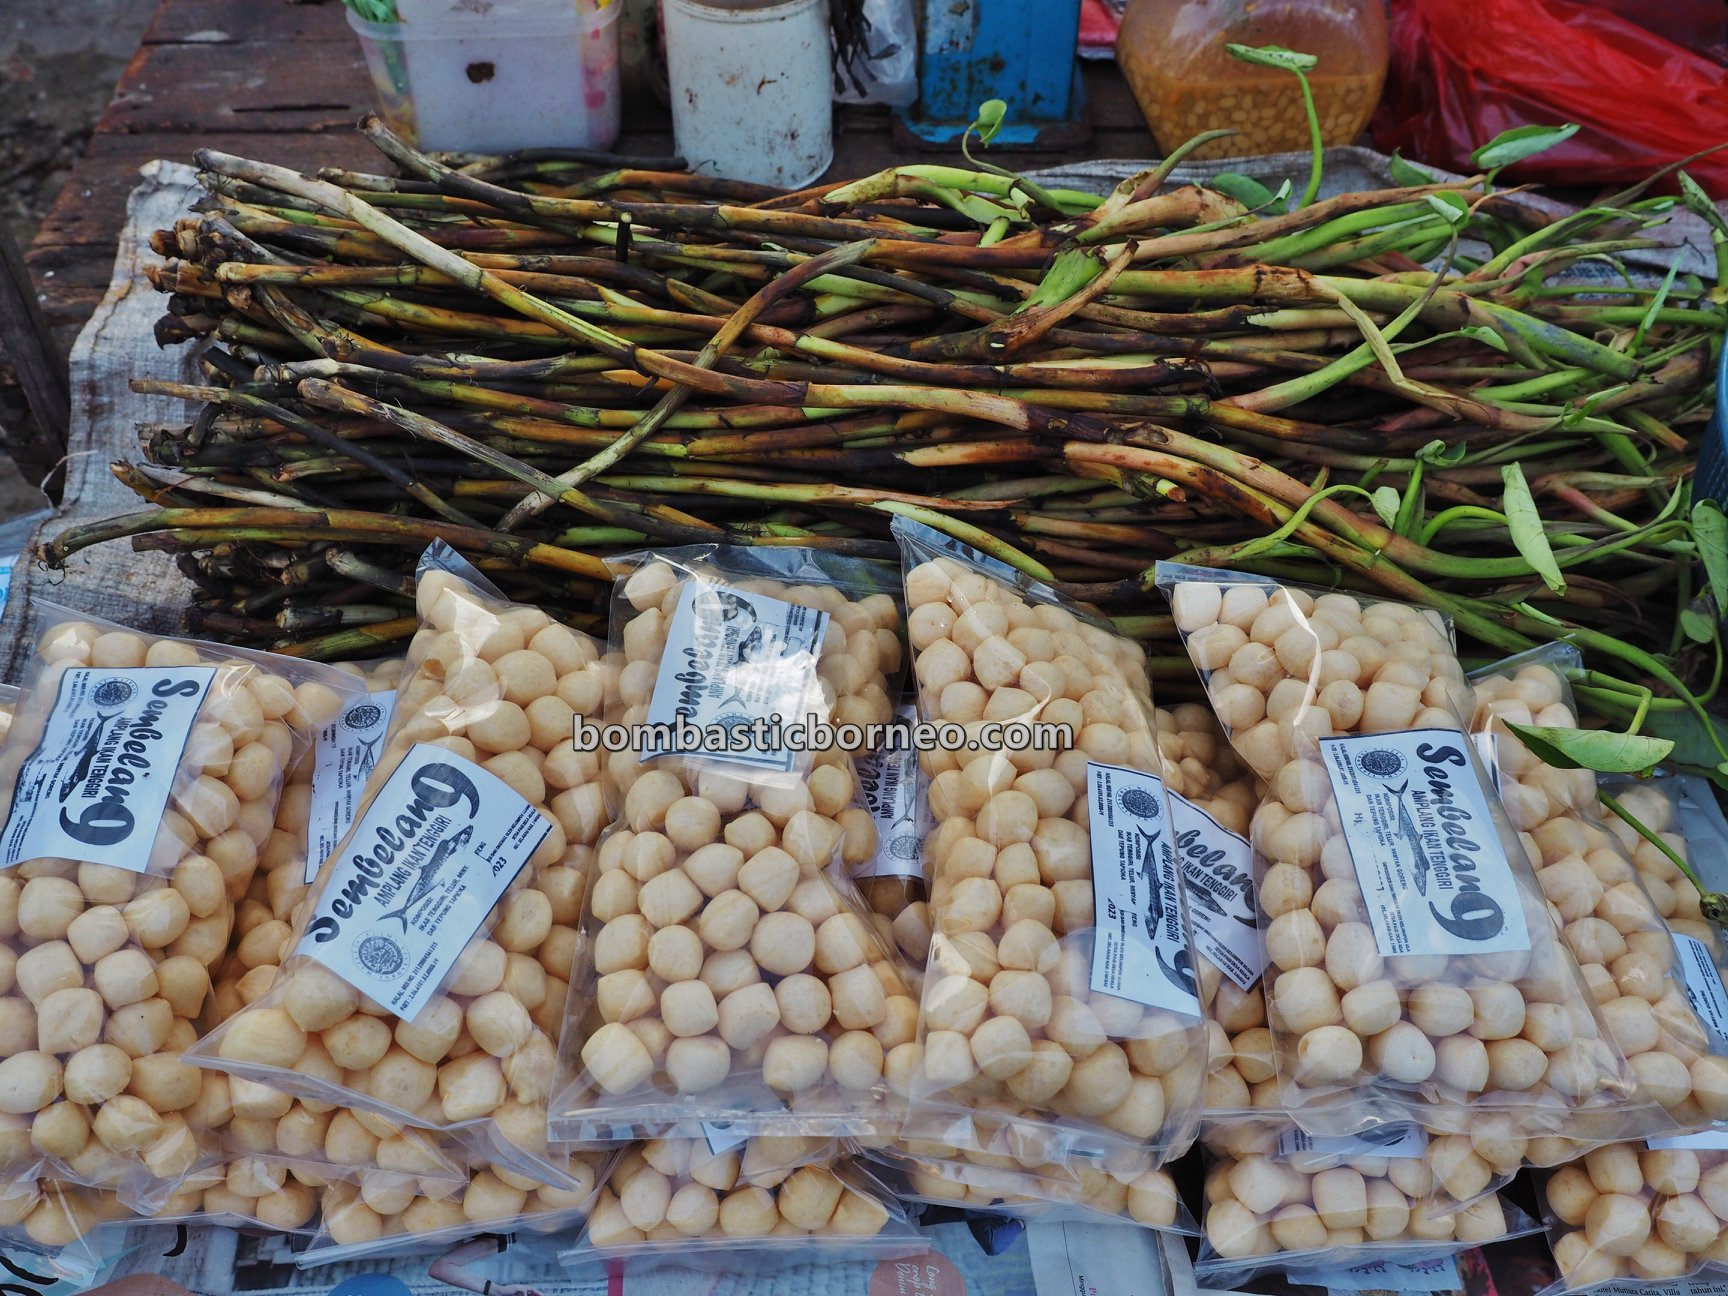 Morning Market, authentic, tradisional, backpackers, West Kalimantan, Kota Amoi, seafood, Tourism, tourist attraction, travel guide, Trans Borneo, 印尼西加里曼丹, 山口洋早市